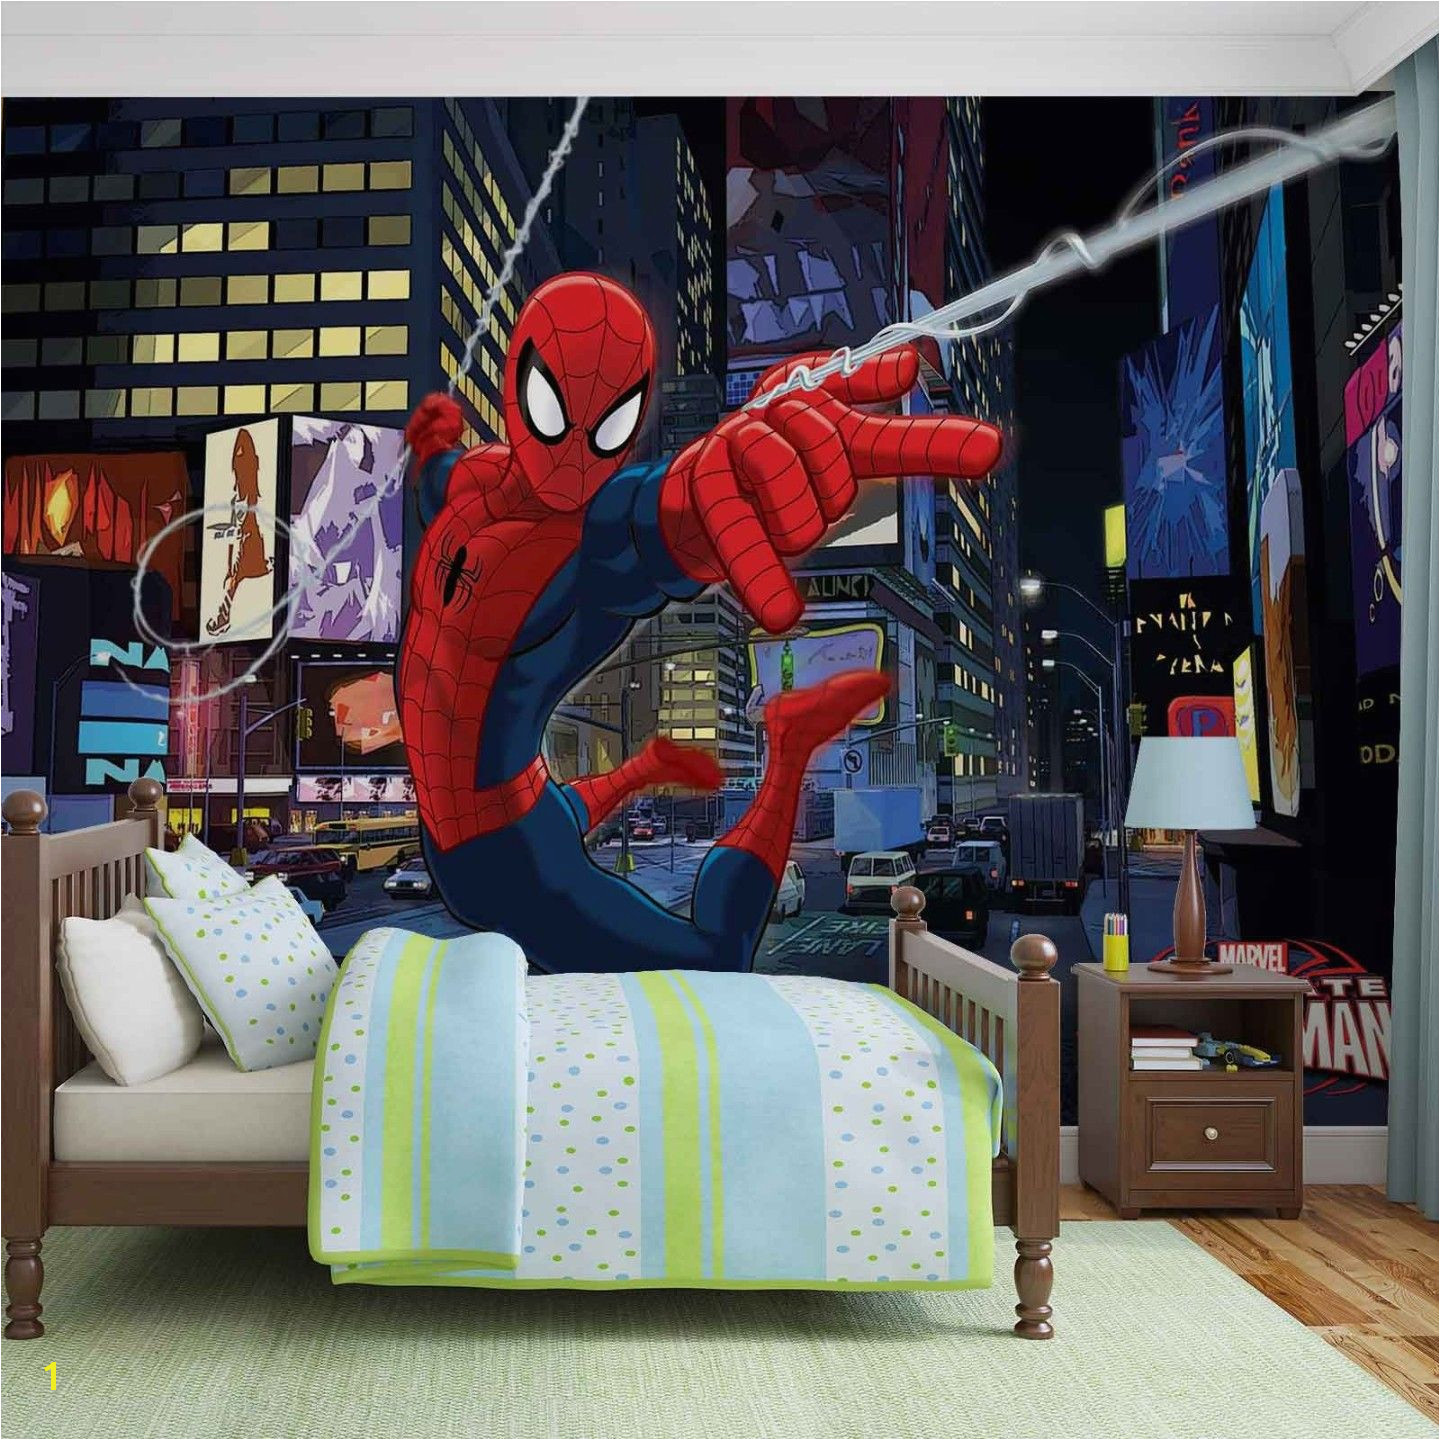 Wallpaper wall mural blue Spider man